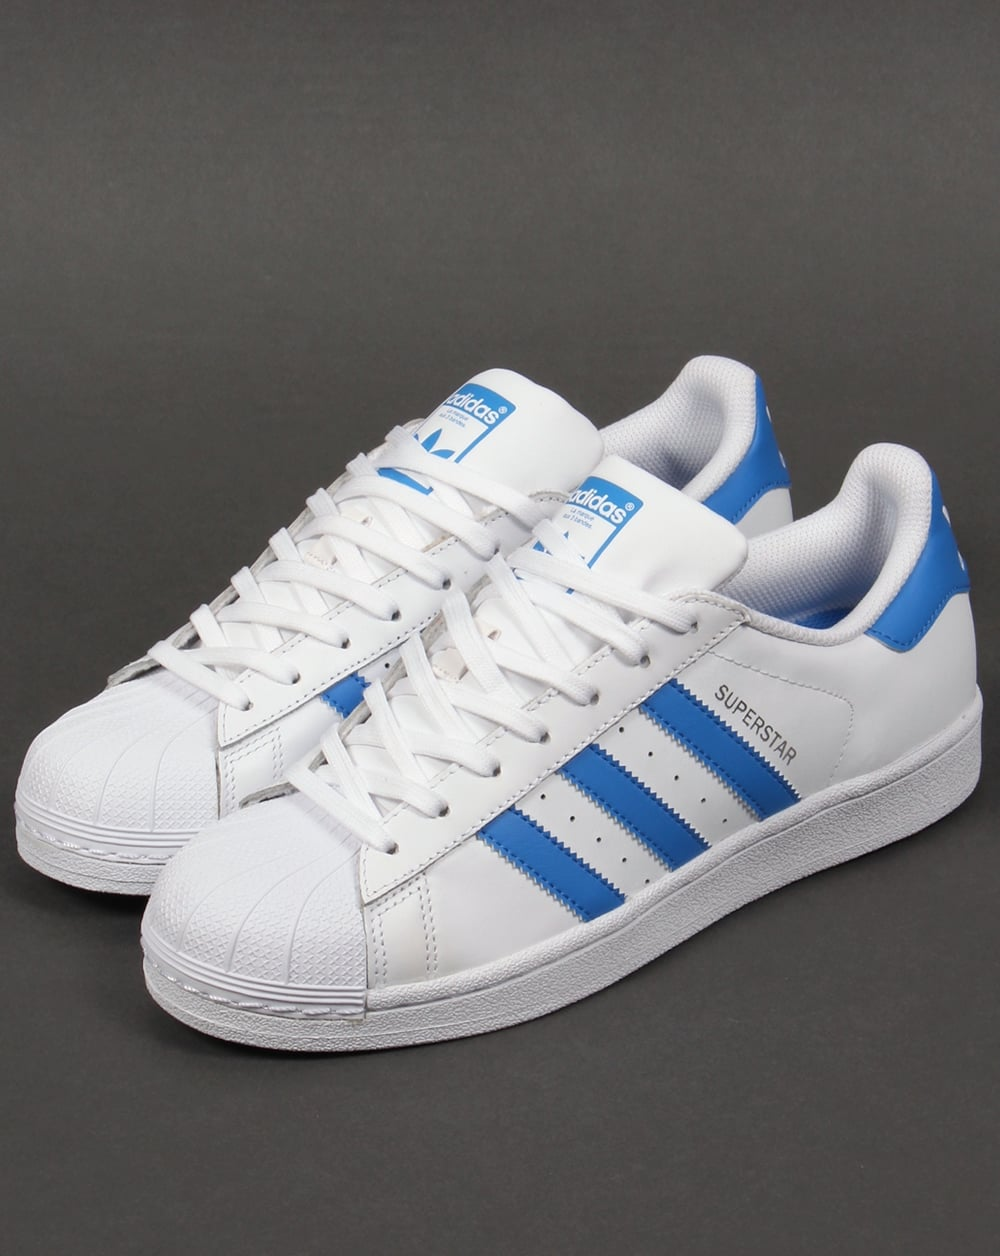 Adidas Superstar Trainers White Ray Blue Originals Shell